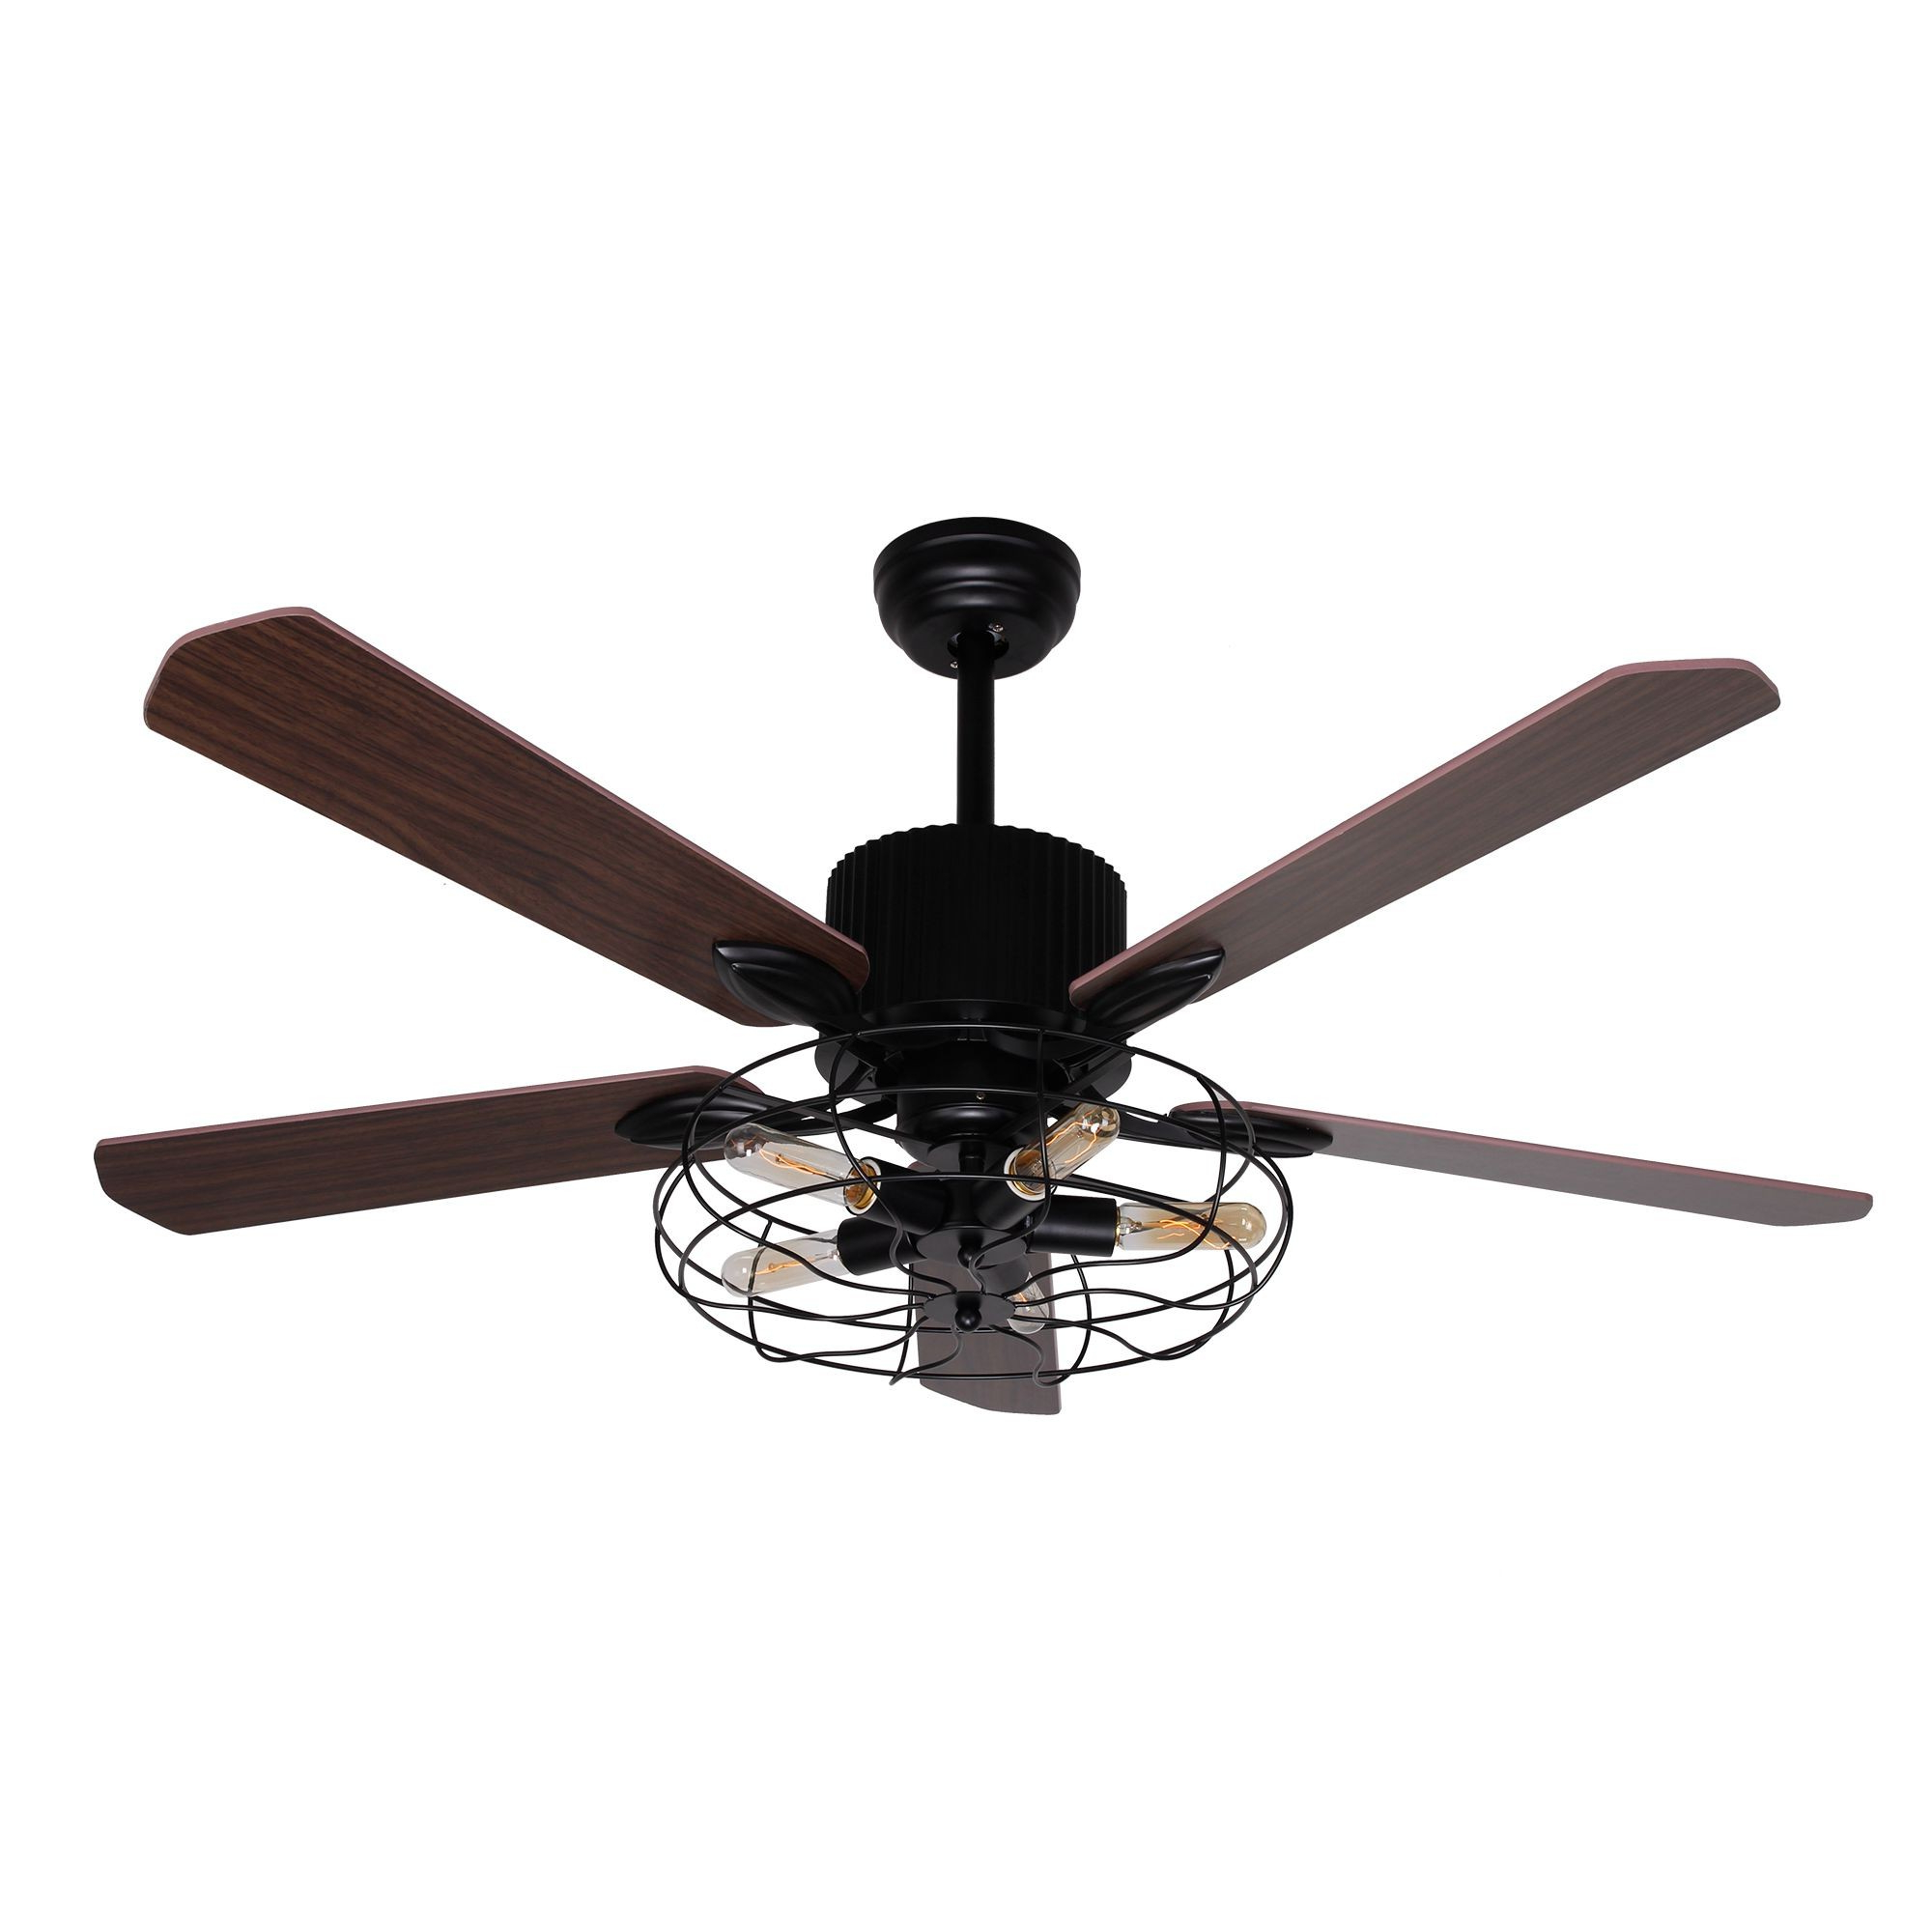 "52"" Roberts Industrial Caged Chandelier Ceiling Fan With Light And Remote Control, 5 Blades, Black Throughout Current Roberts 5 Blade Ceiling Fans (View 4 of 20)"